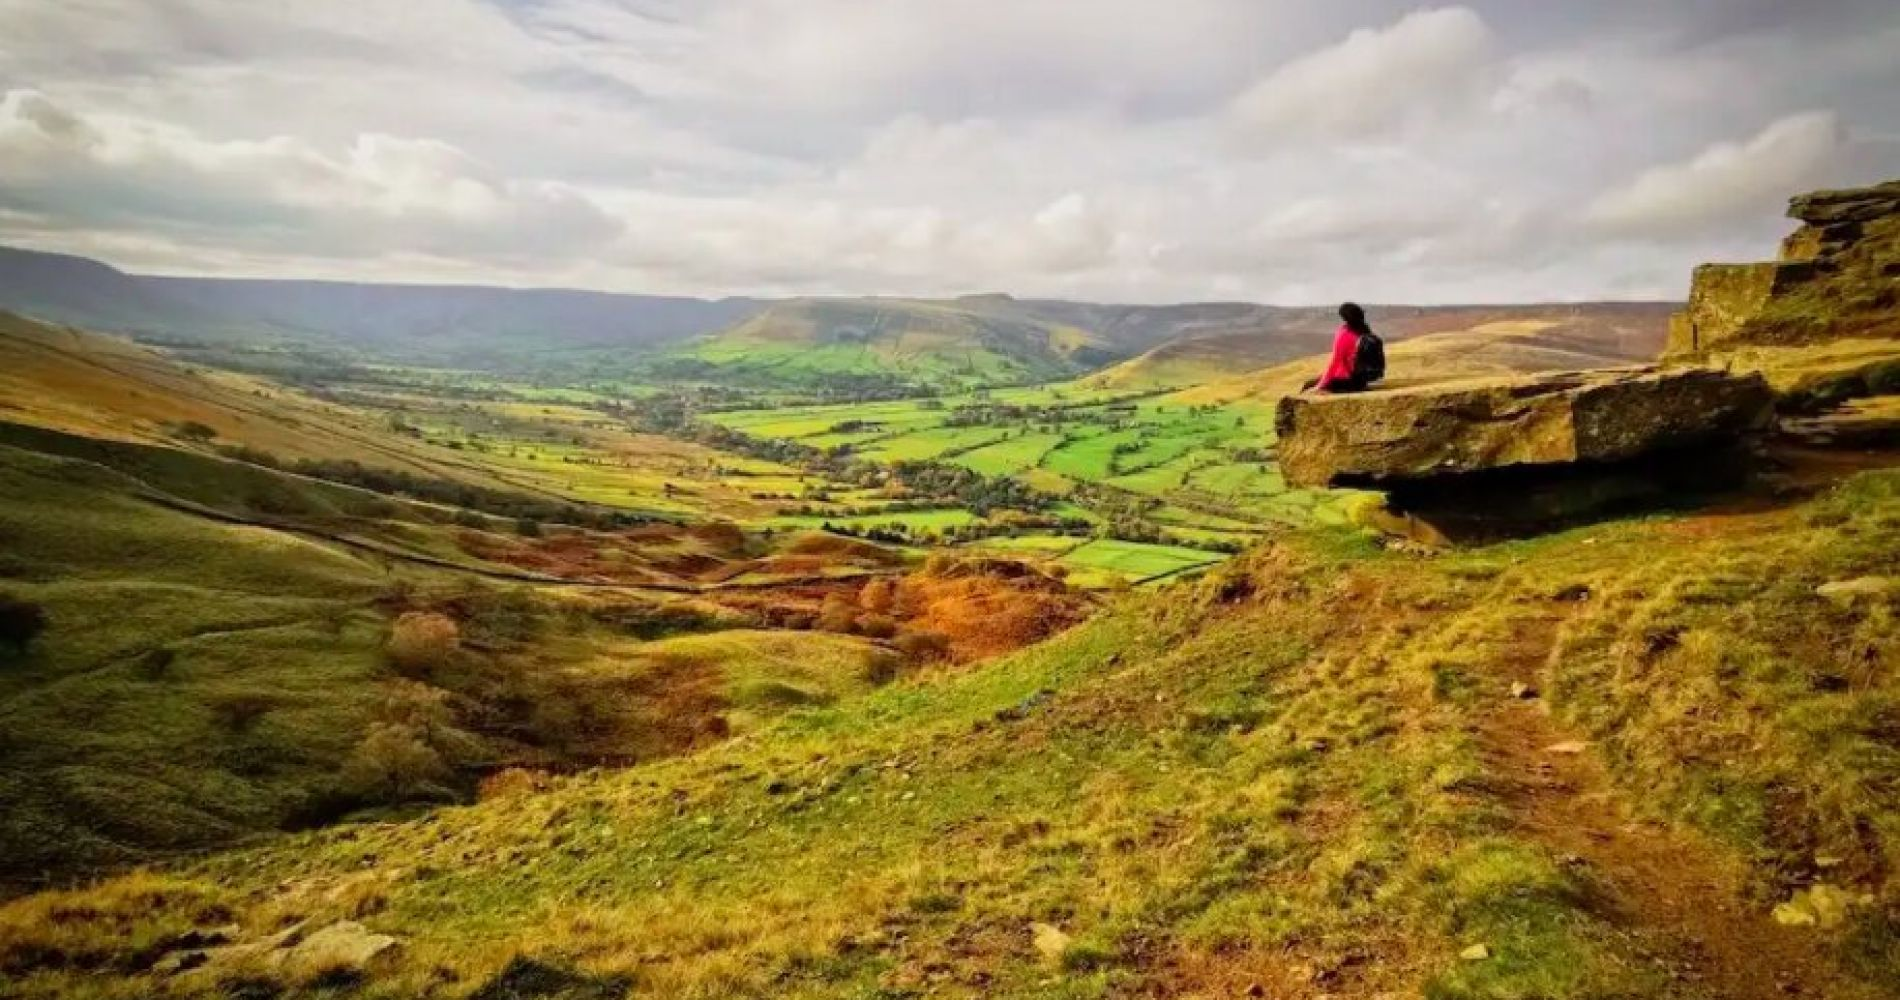 Hike Mam Tor, the 'Shivering Mountain' in the Peak District, UK